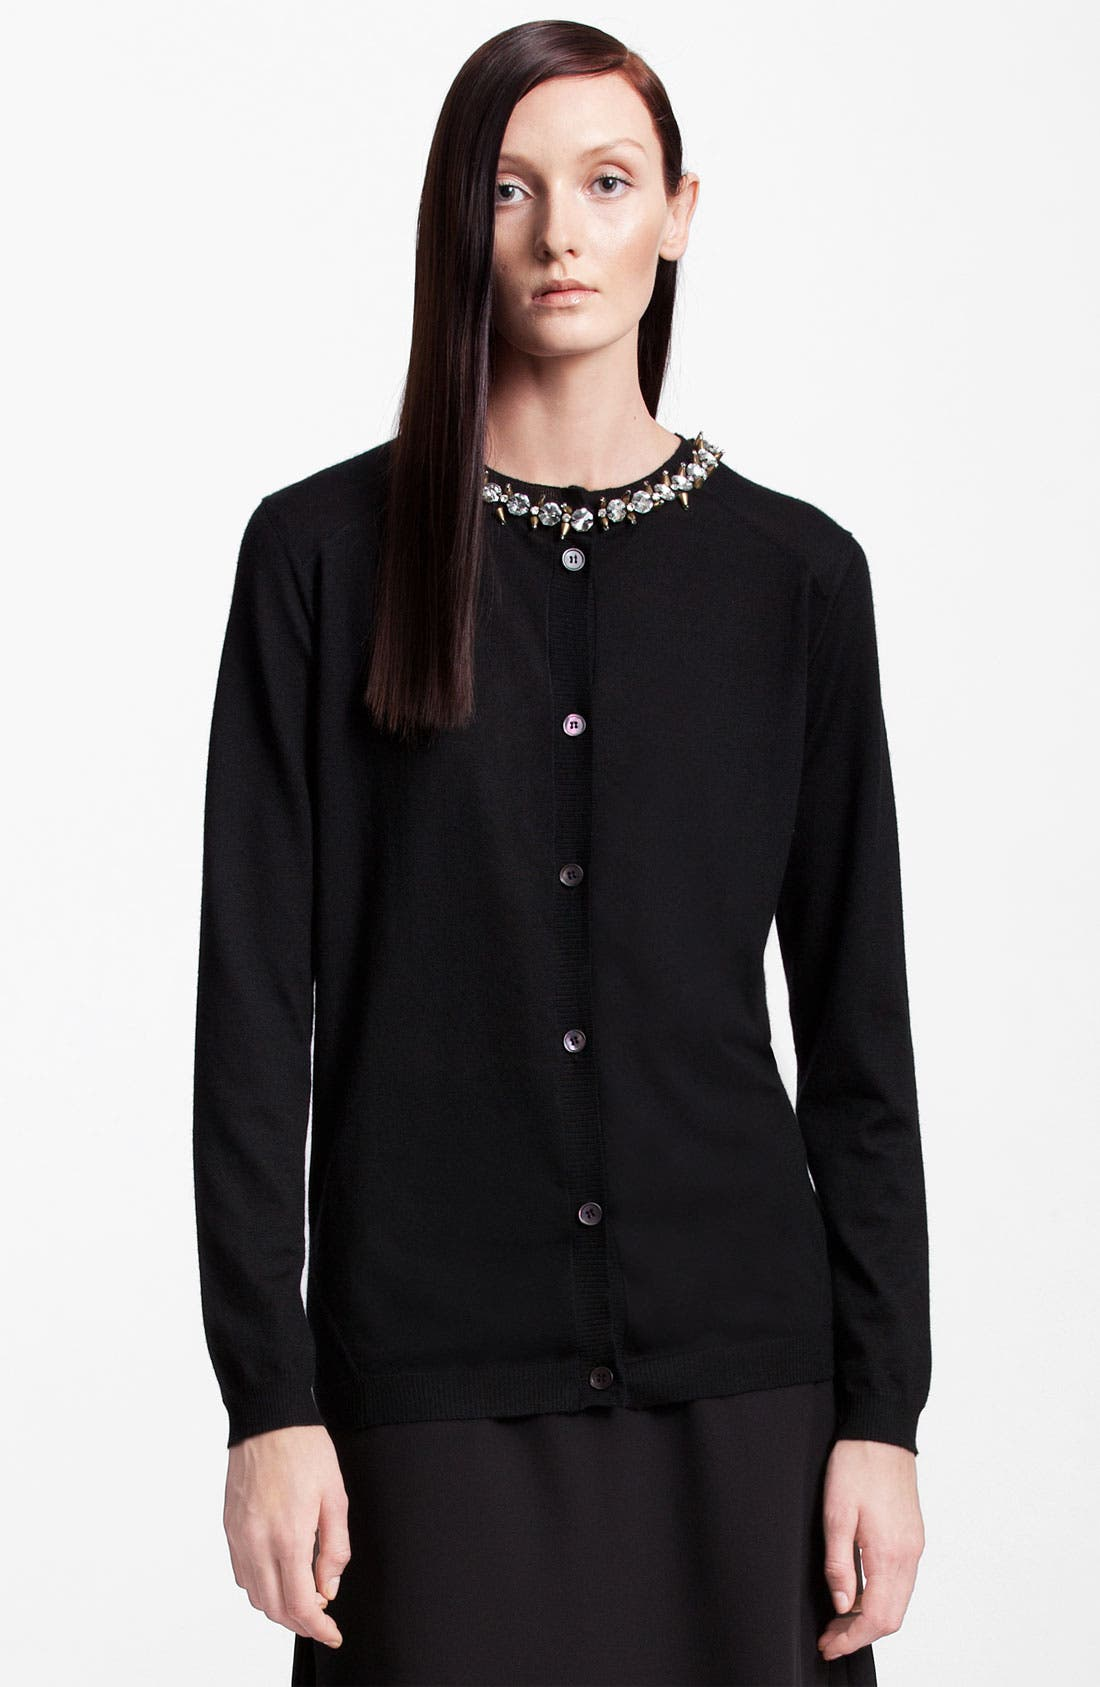 Alternate Image 1 Selected - Marni Jewel Collar Cashmere Cardigan